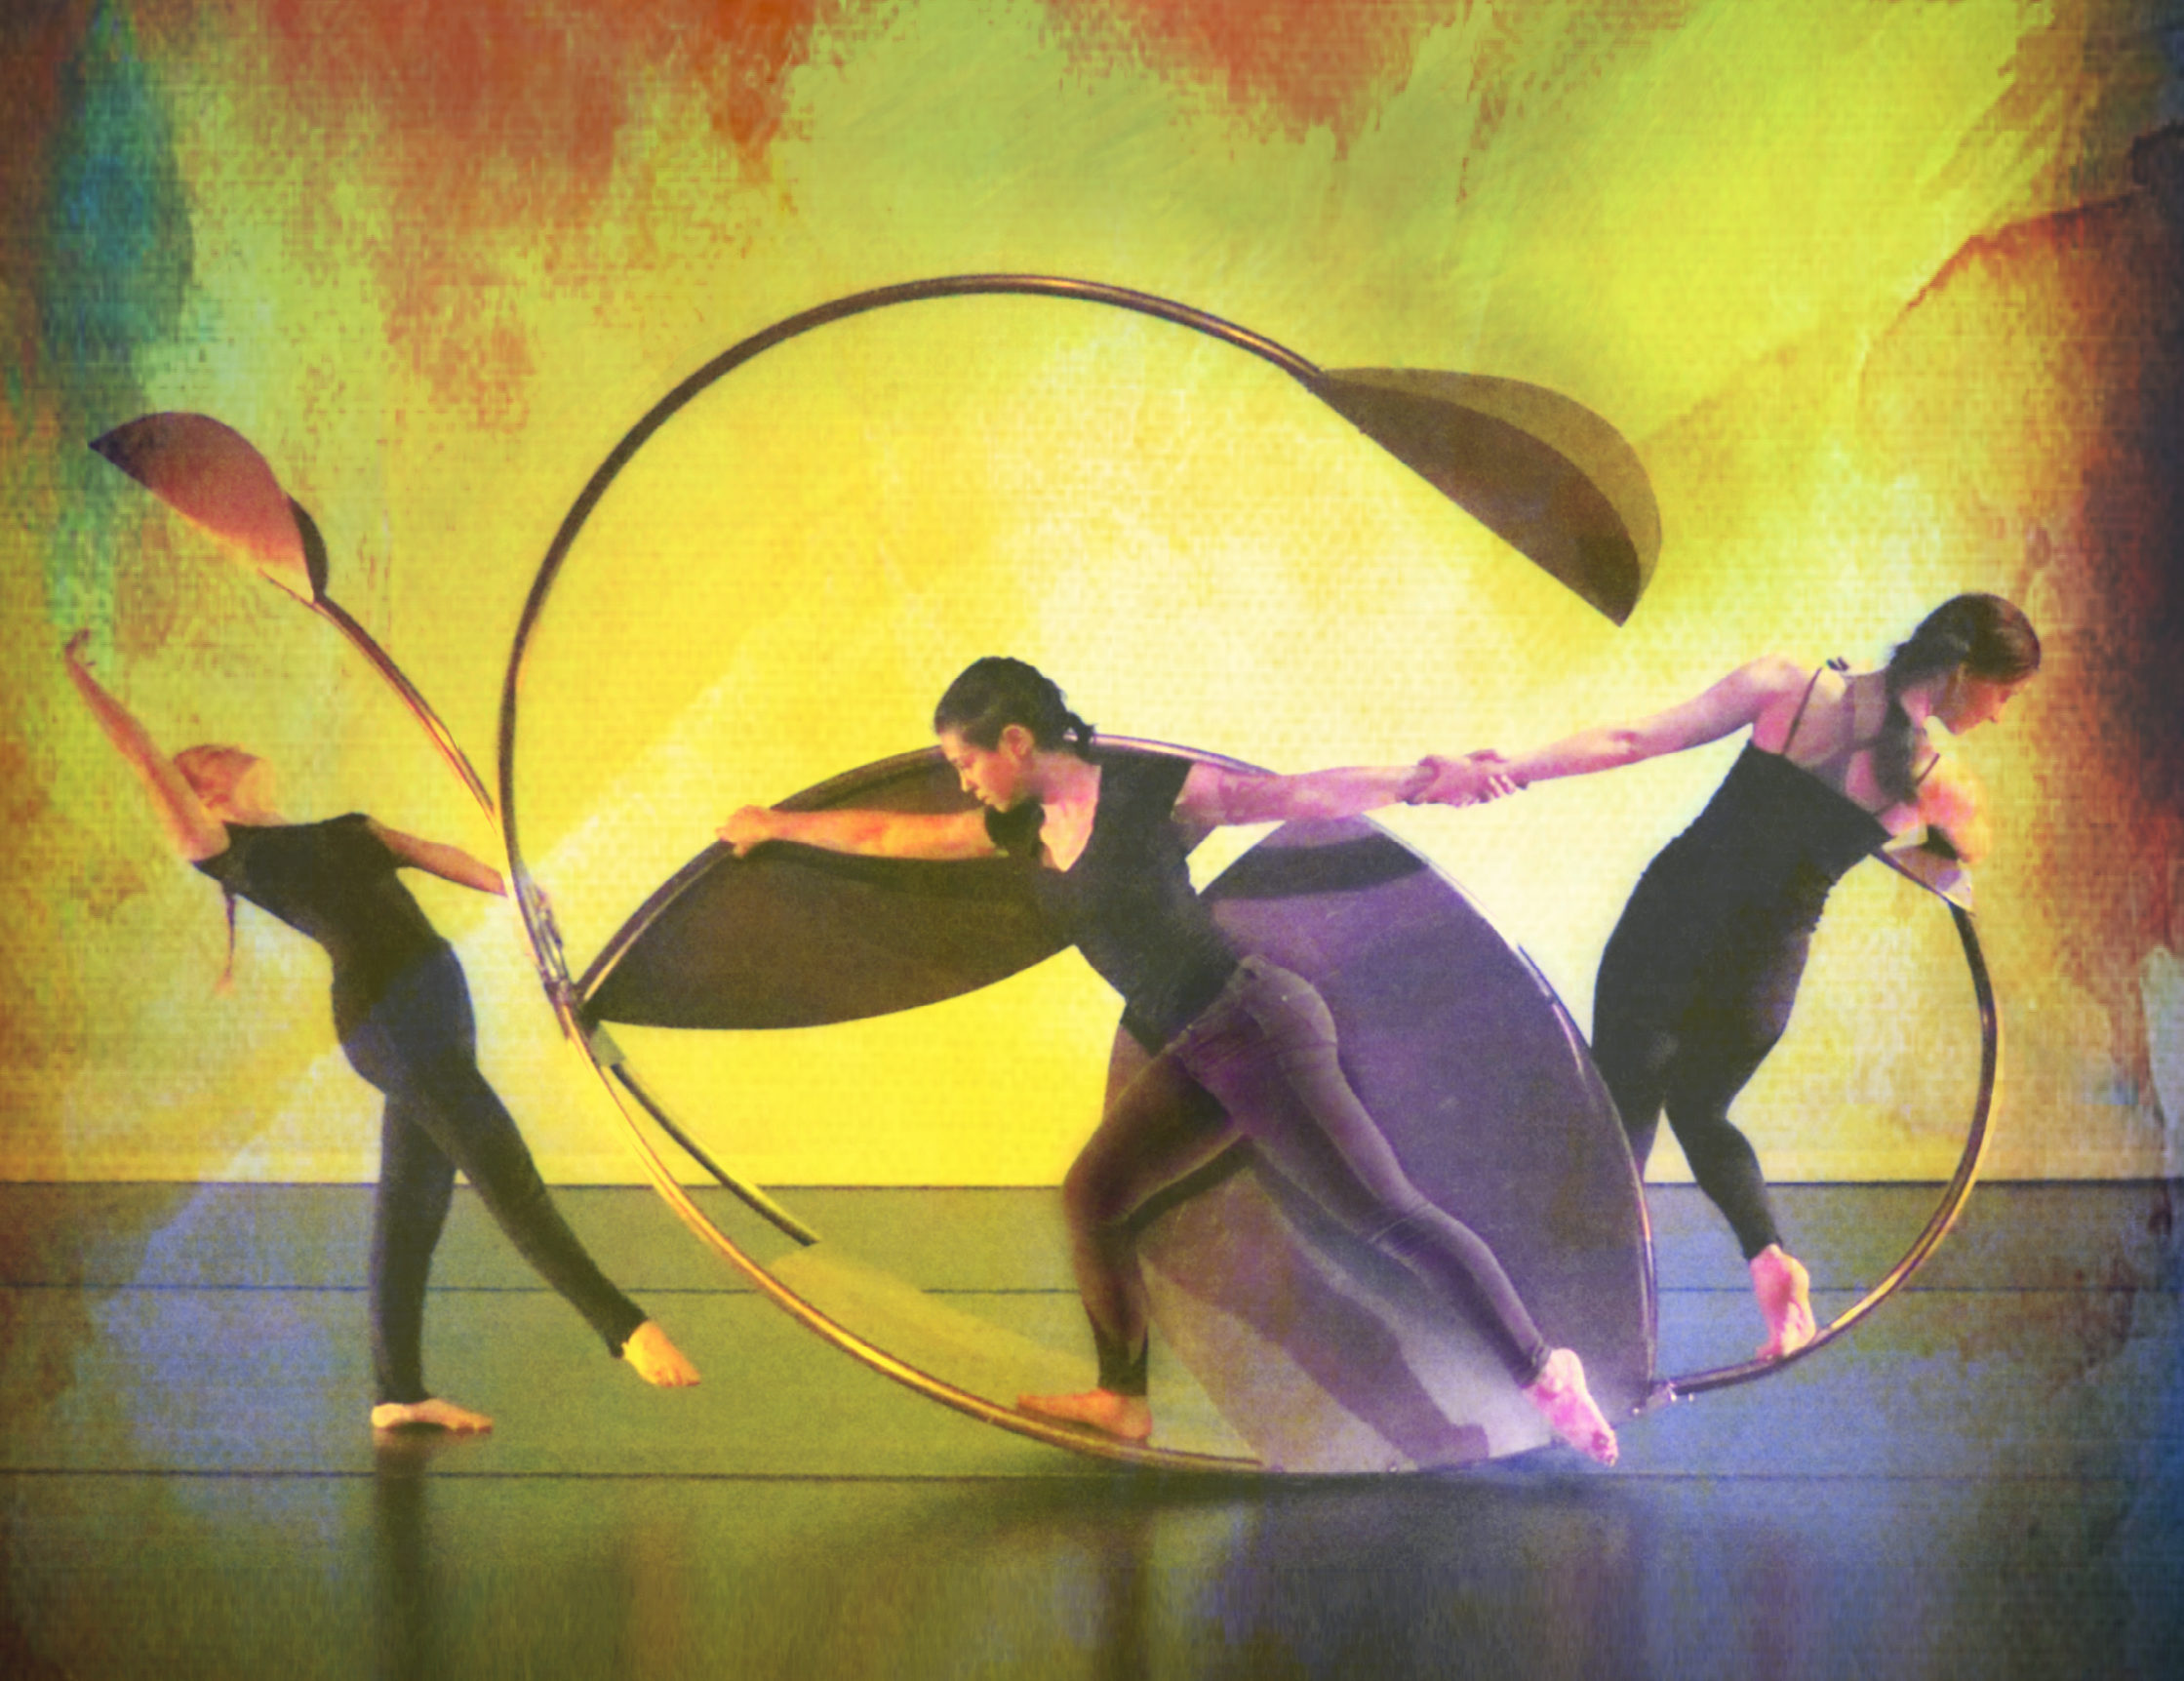 Three dancers surround a large metal sculpture in front of a watercolor background that bleeds red into yellow into green.